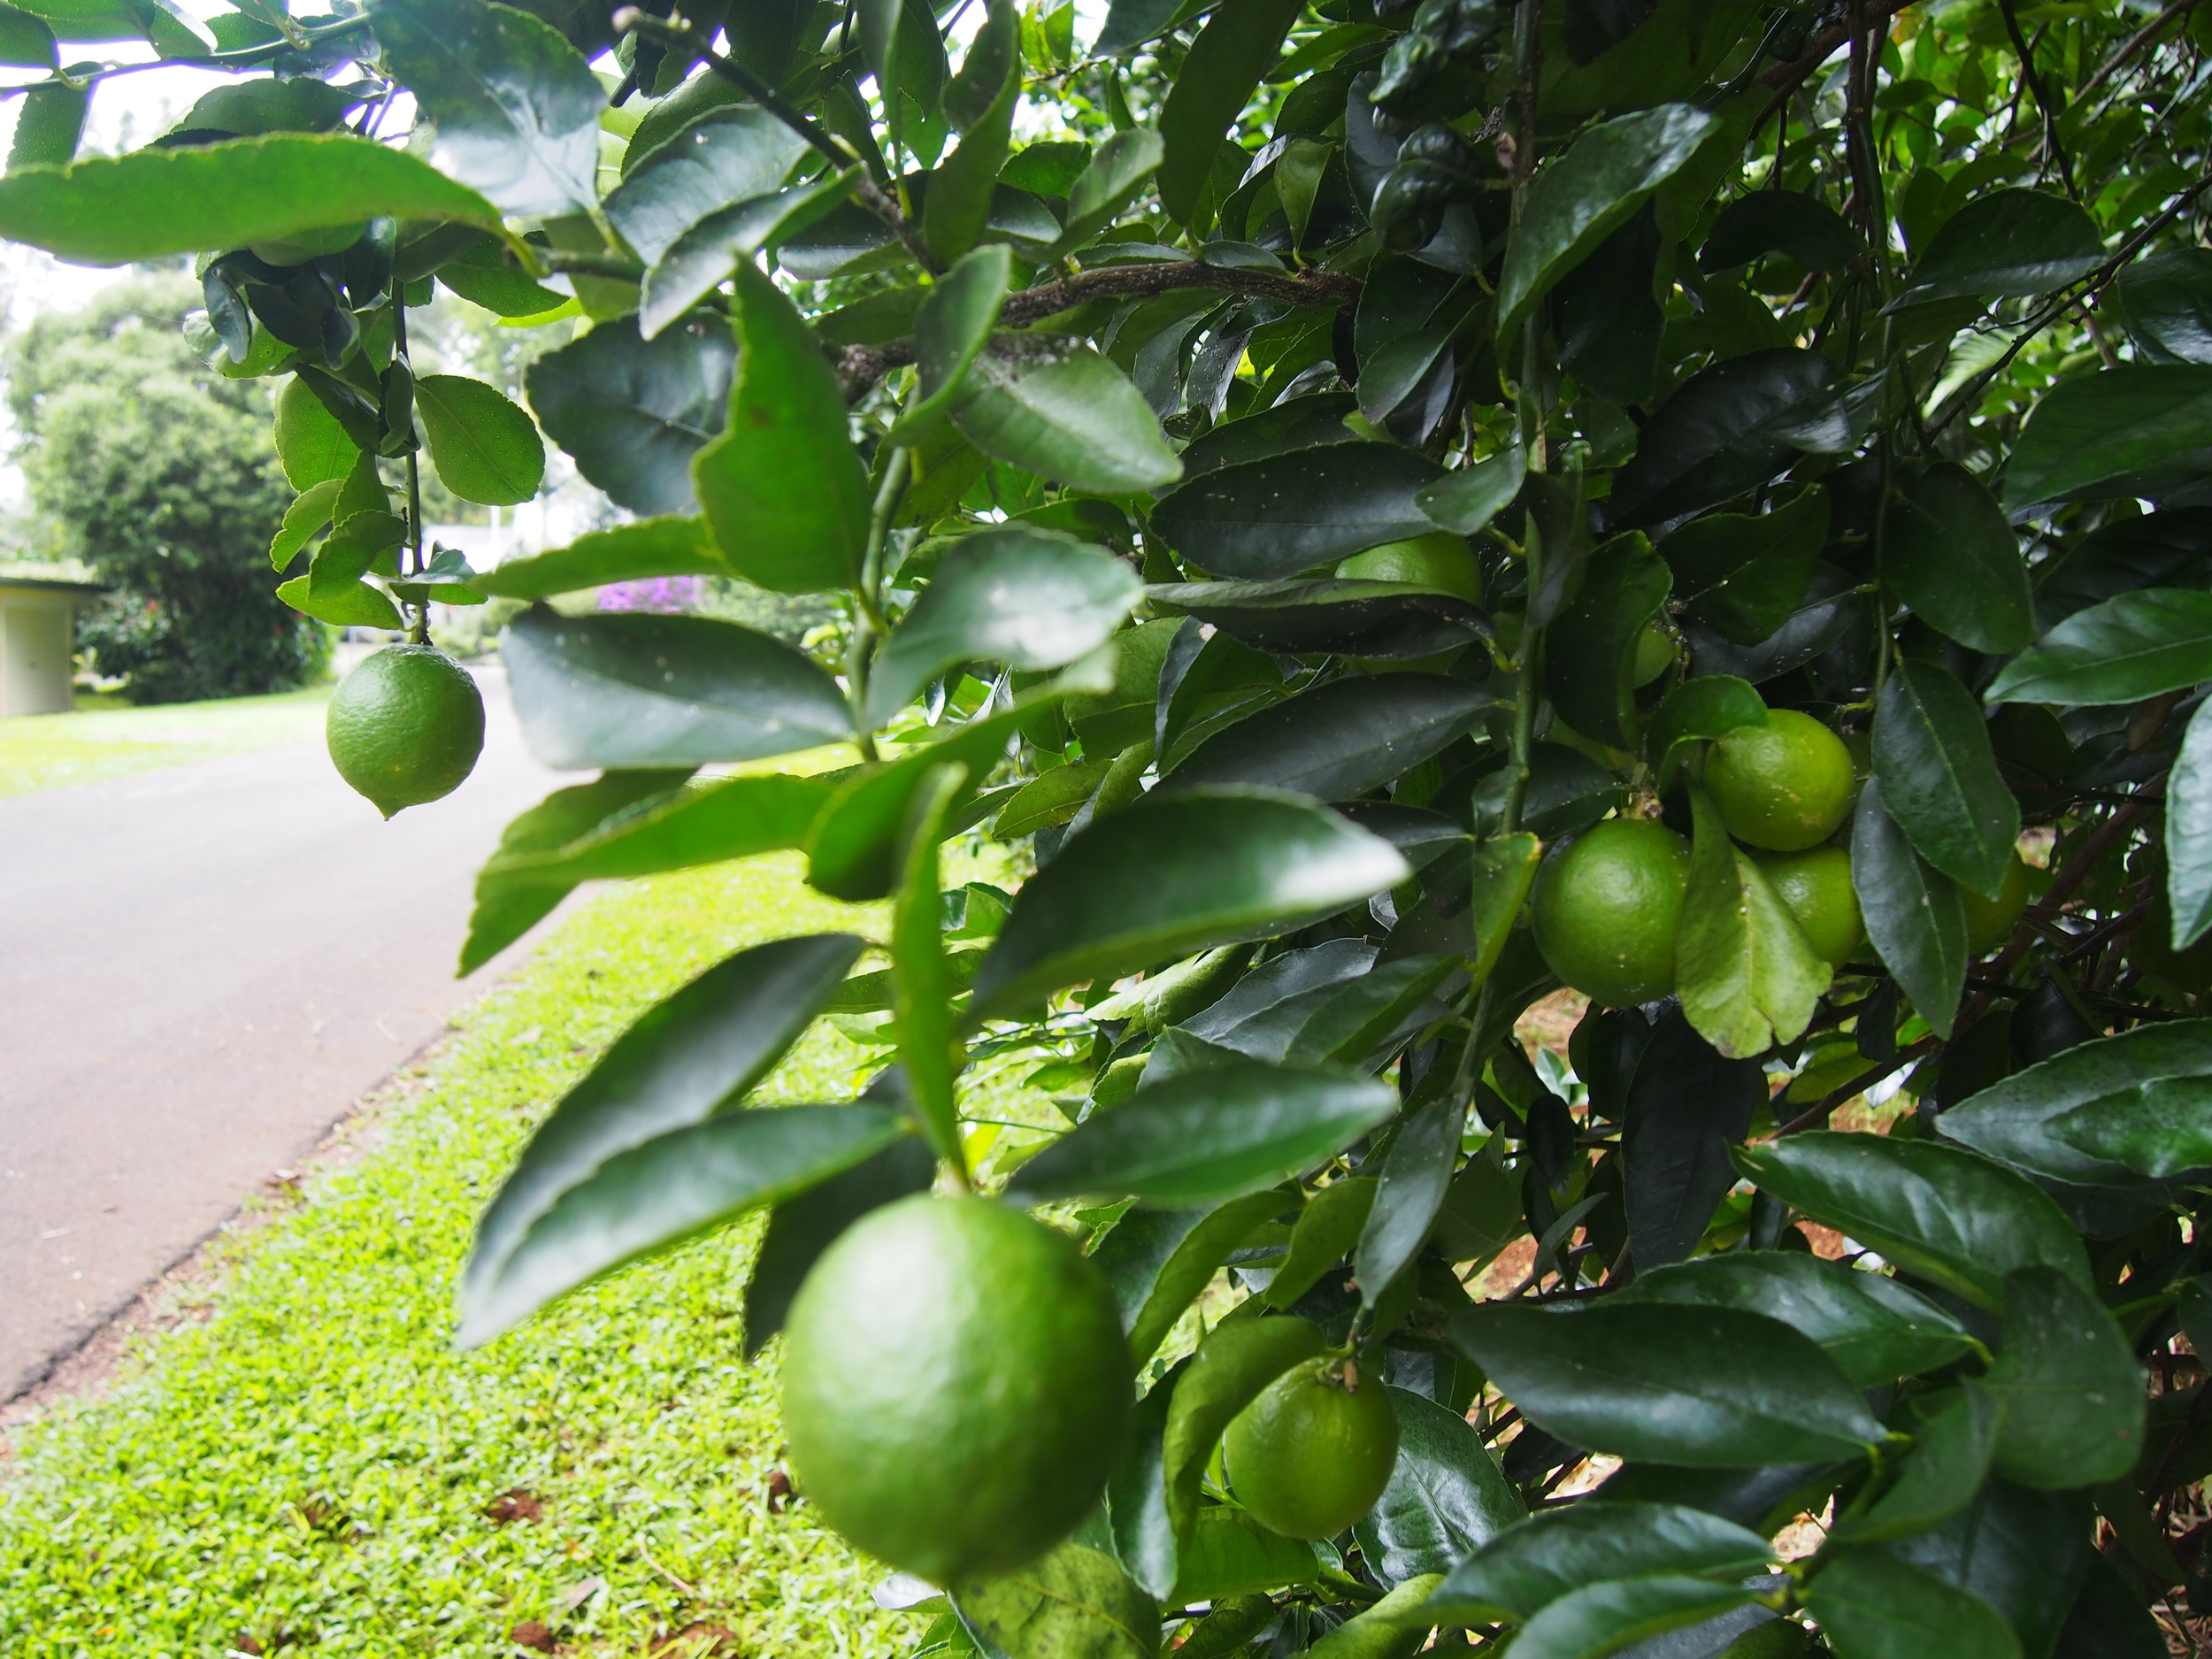 Plump and juicy verge grown limes ready to eat.